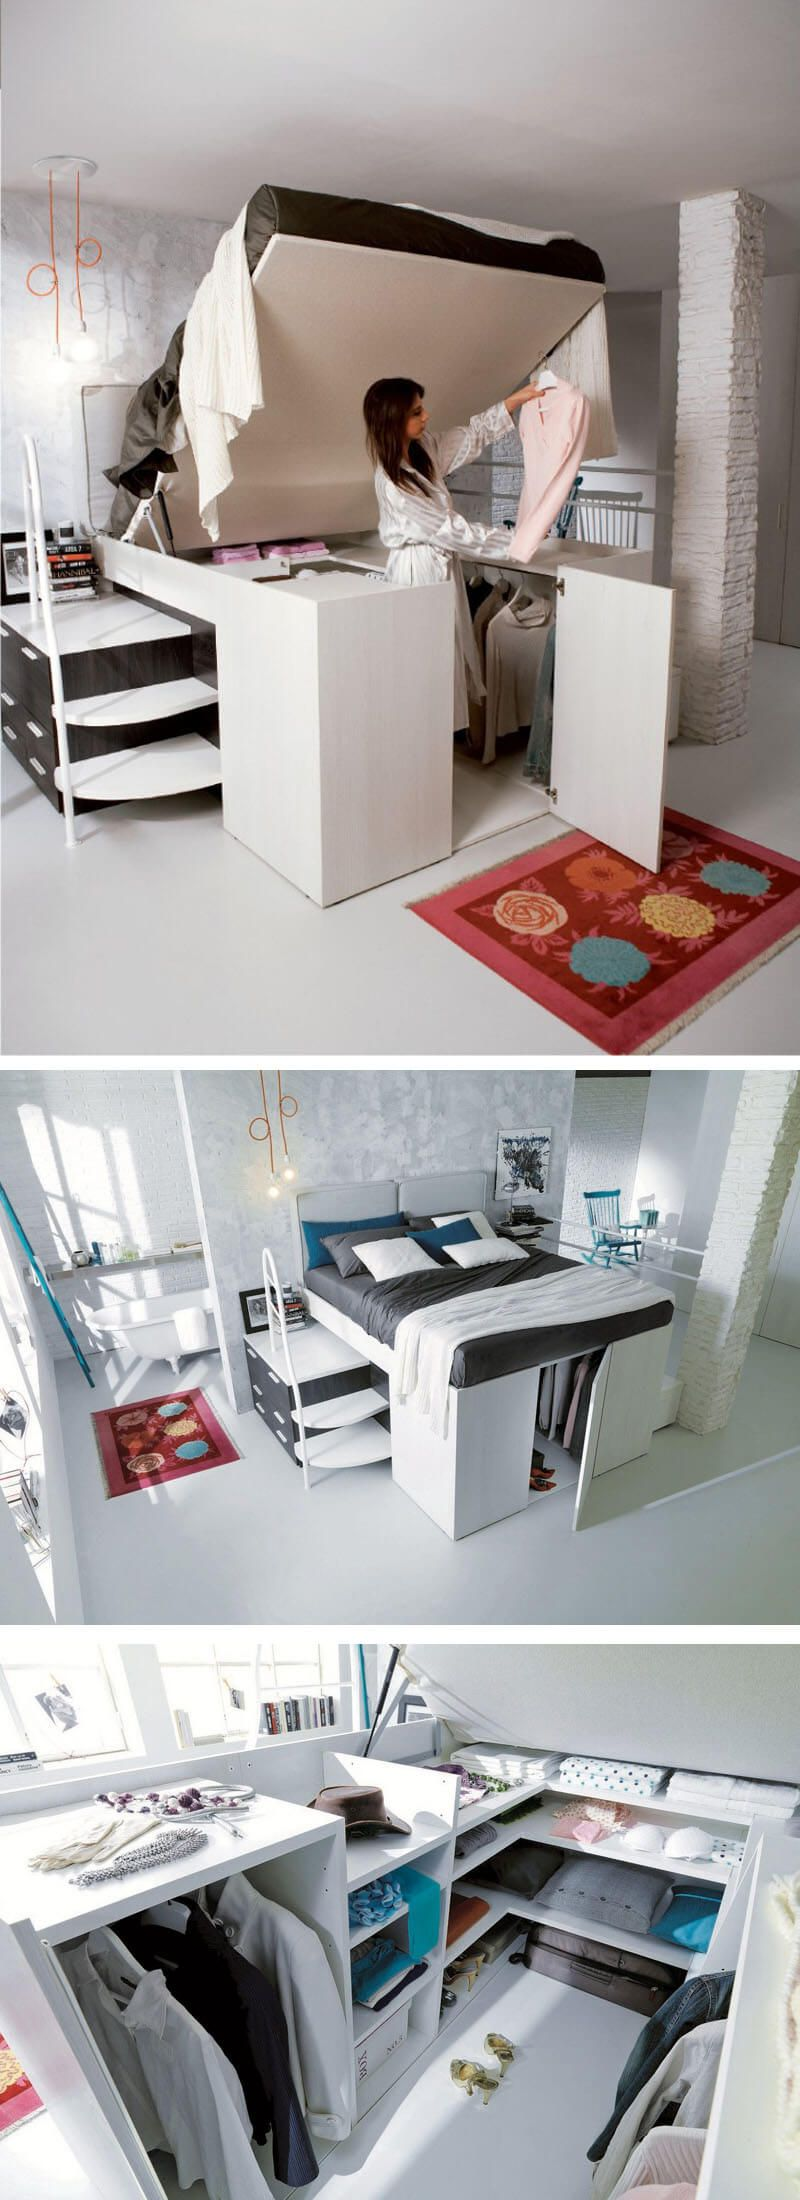 31 Small Space Ideas To Maximize Your Tiny Bedroom: 37 Small Bedroom Designs And Ideas For Maximizing Your Small Space